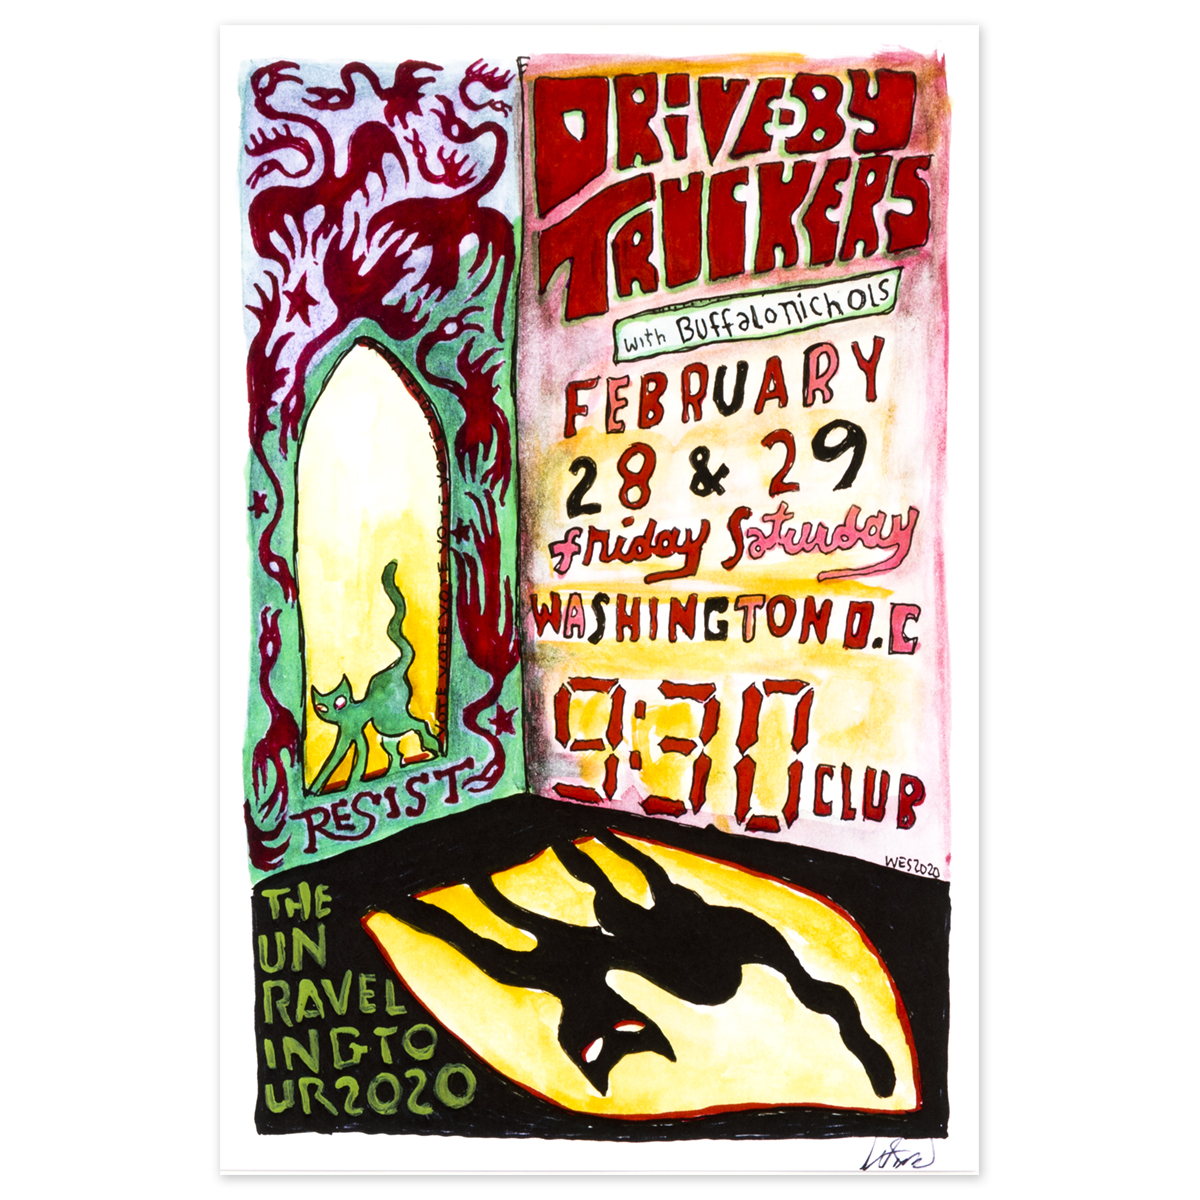 9:30 Club February 28-29 2020 Poster